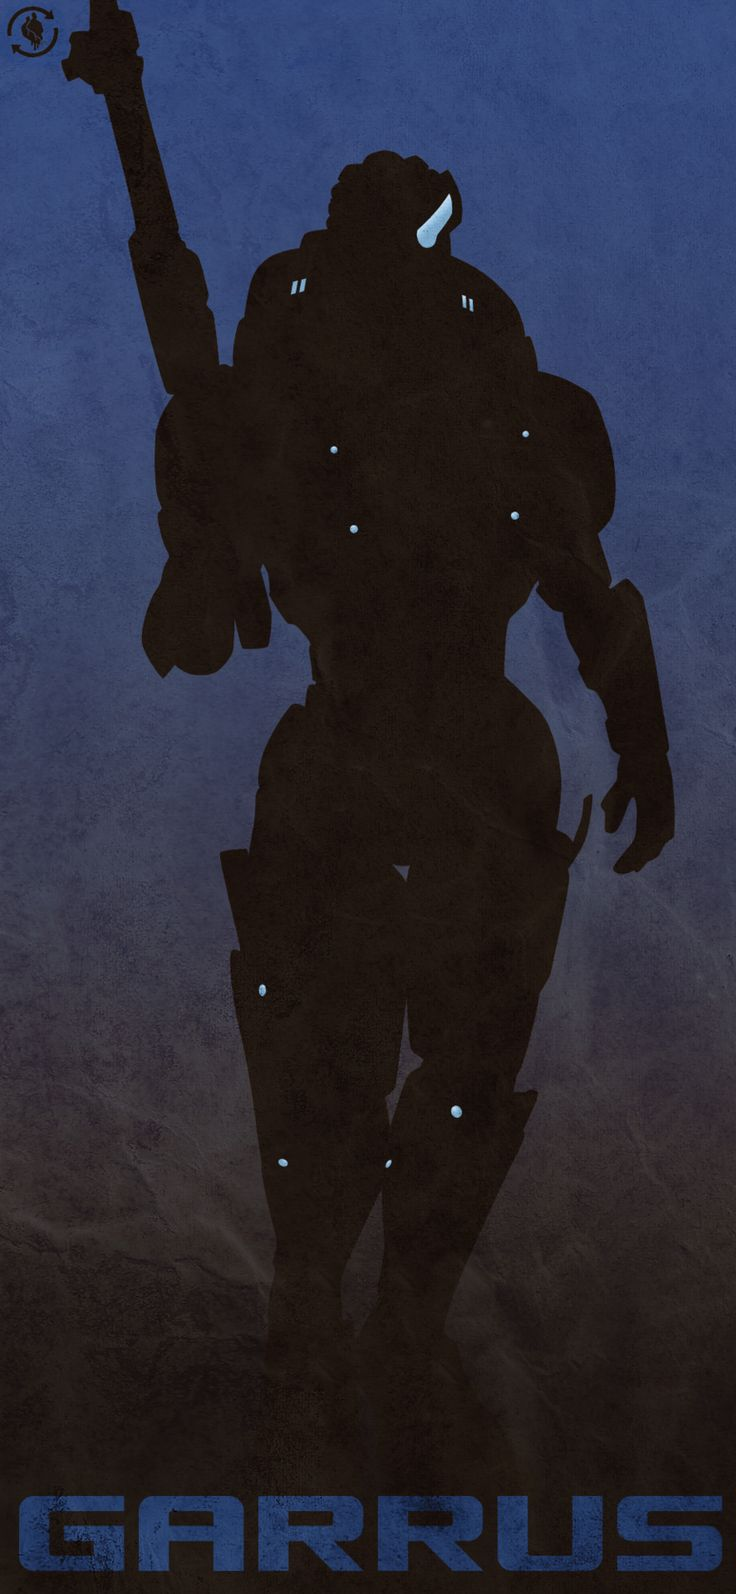 Epic Garrus silhouette graphic, I wish I had a print of this.